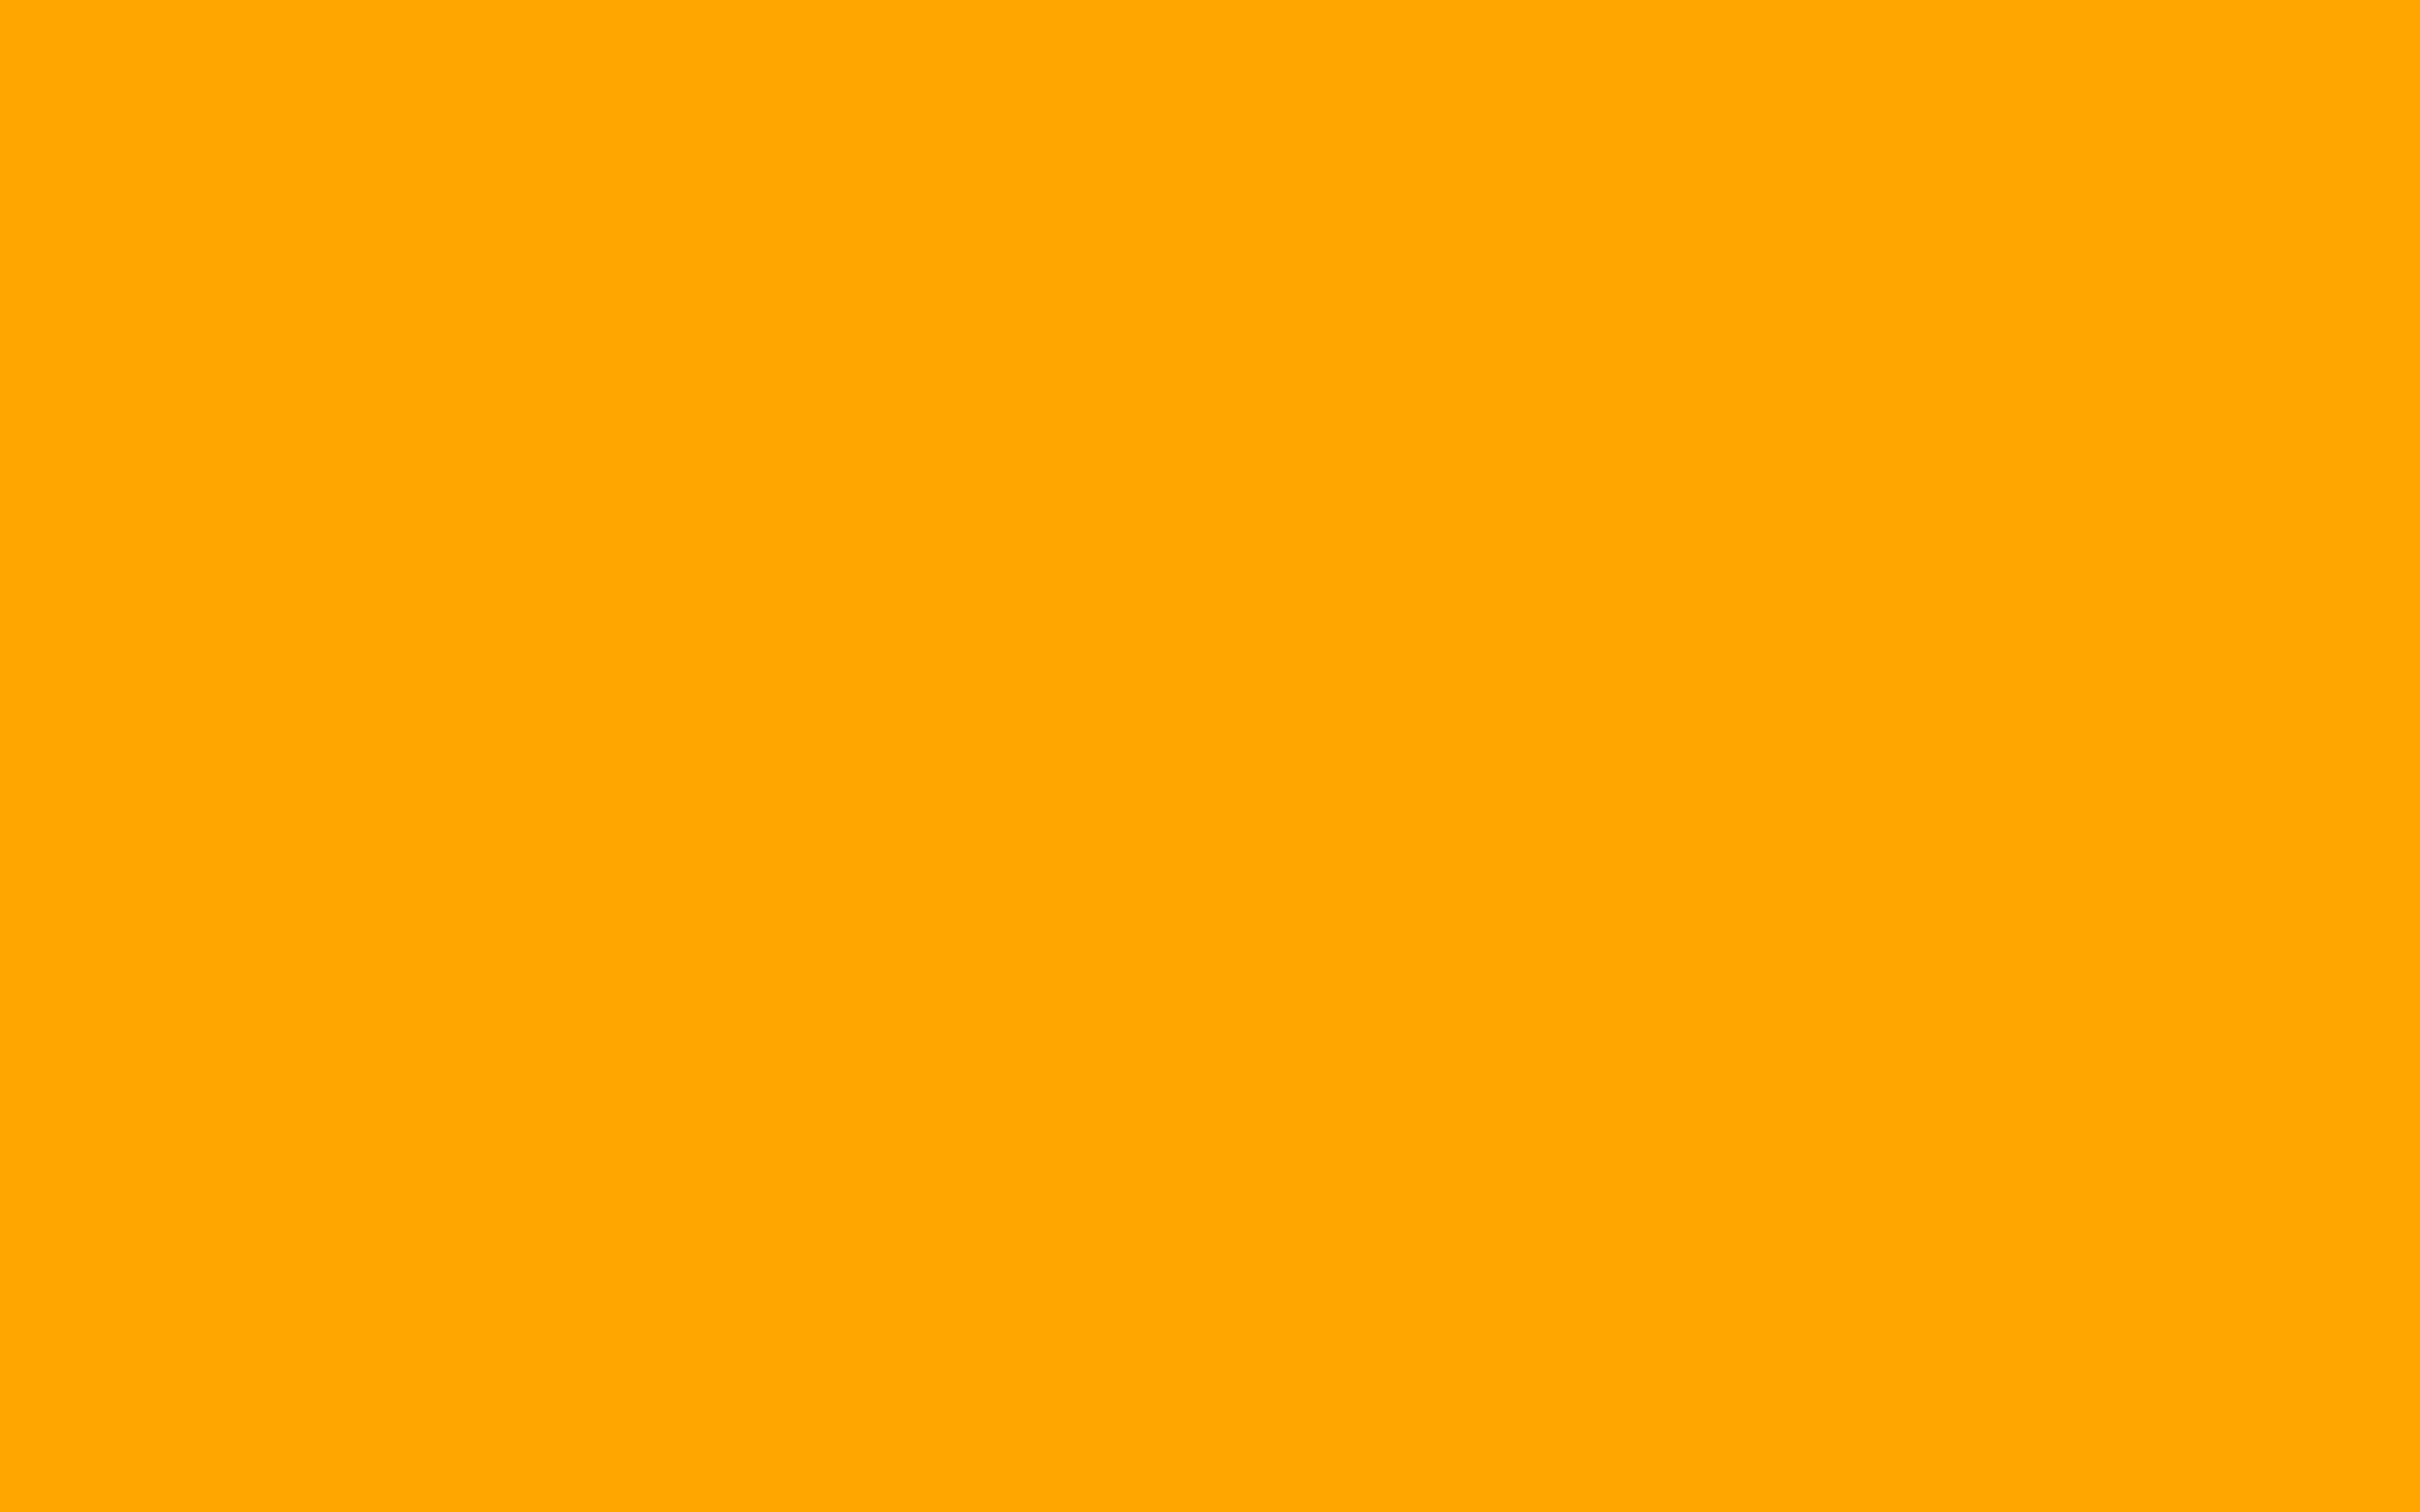 2560x1600 Chrome Yellow Solid Color Background